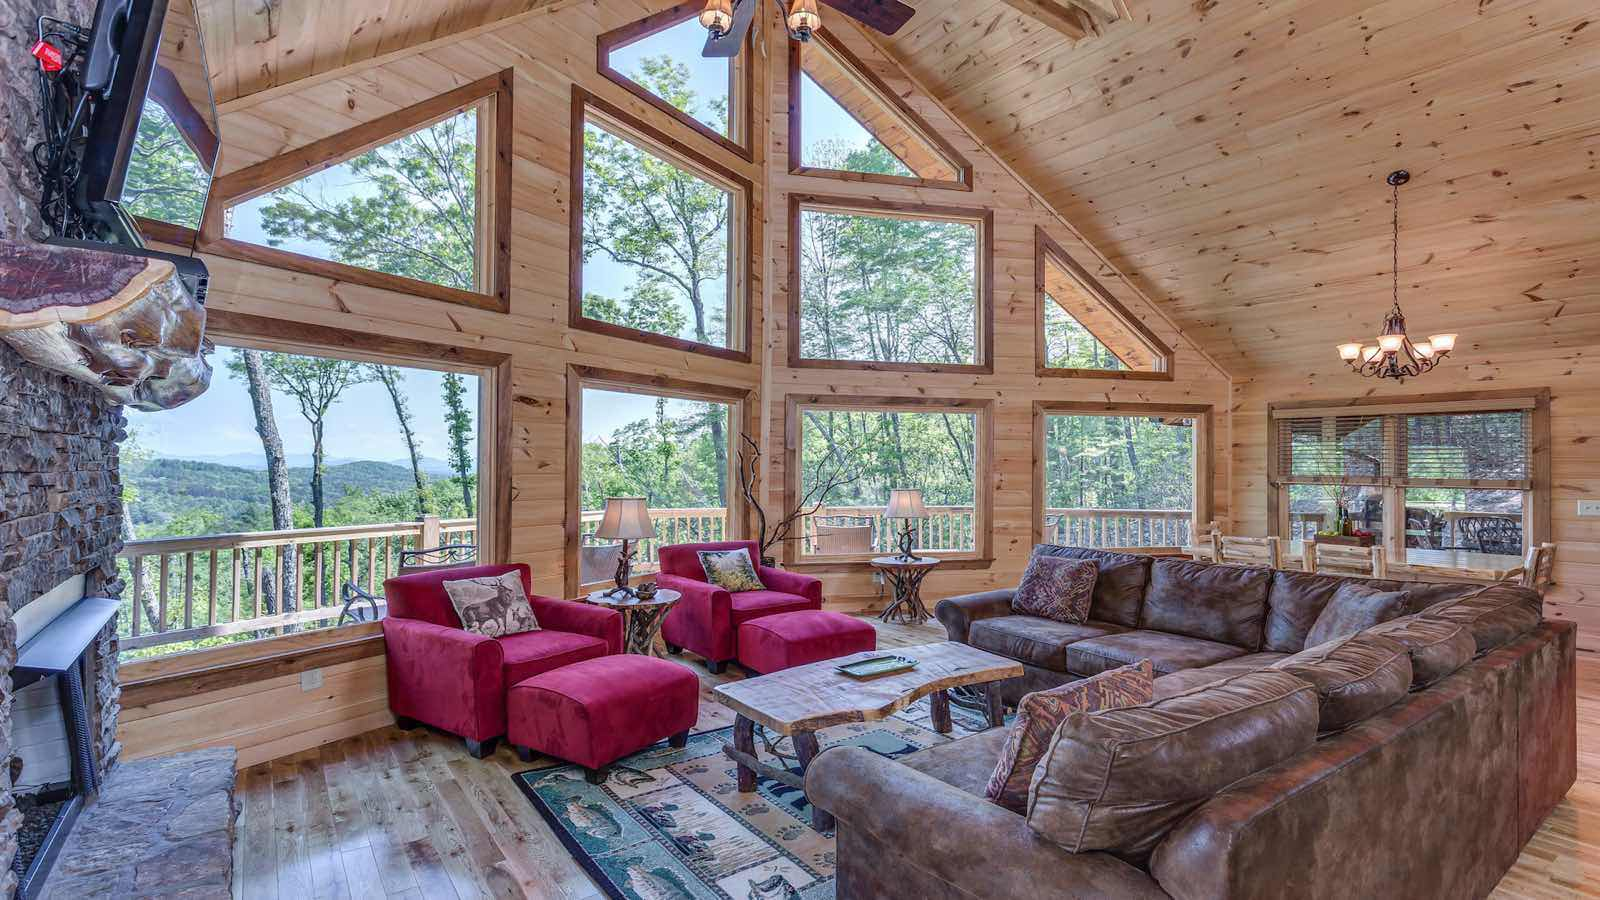 Attirant Mountain Top Serenity Cabin Rental